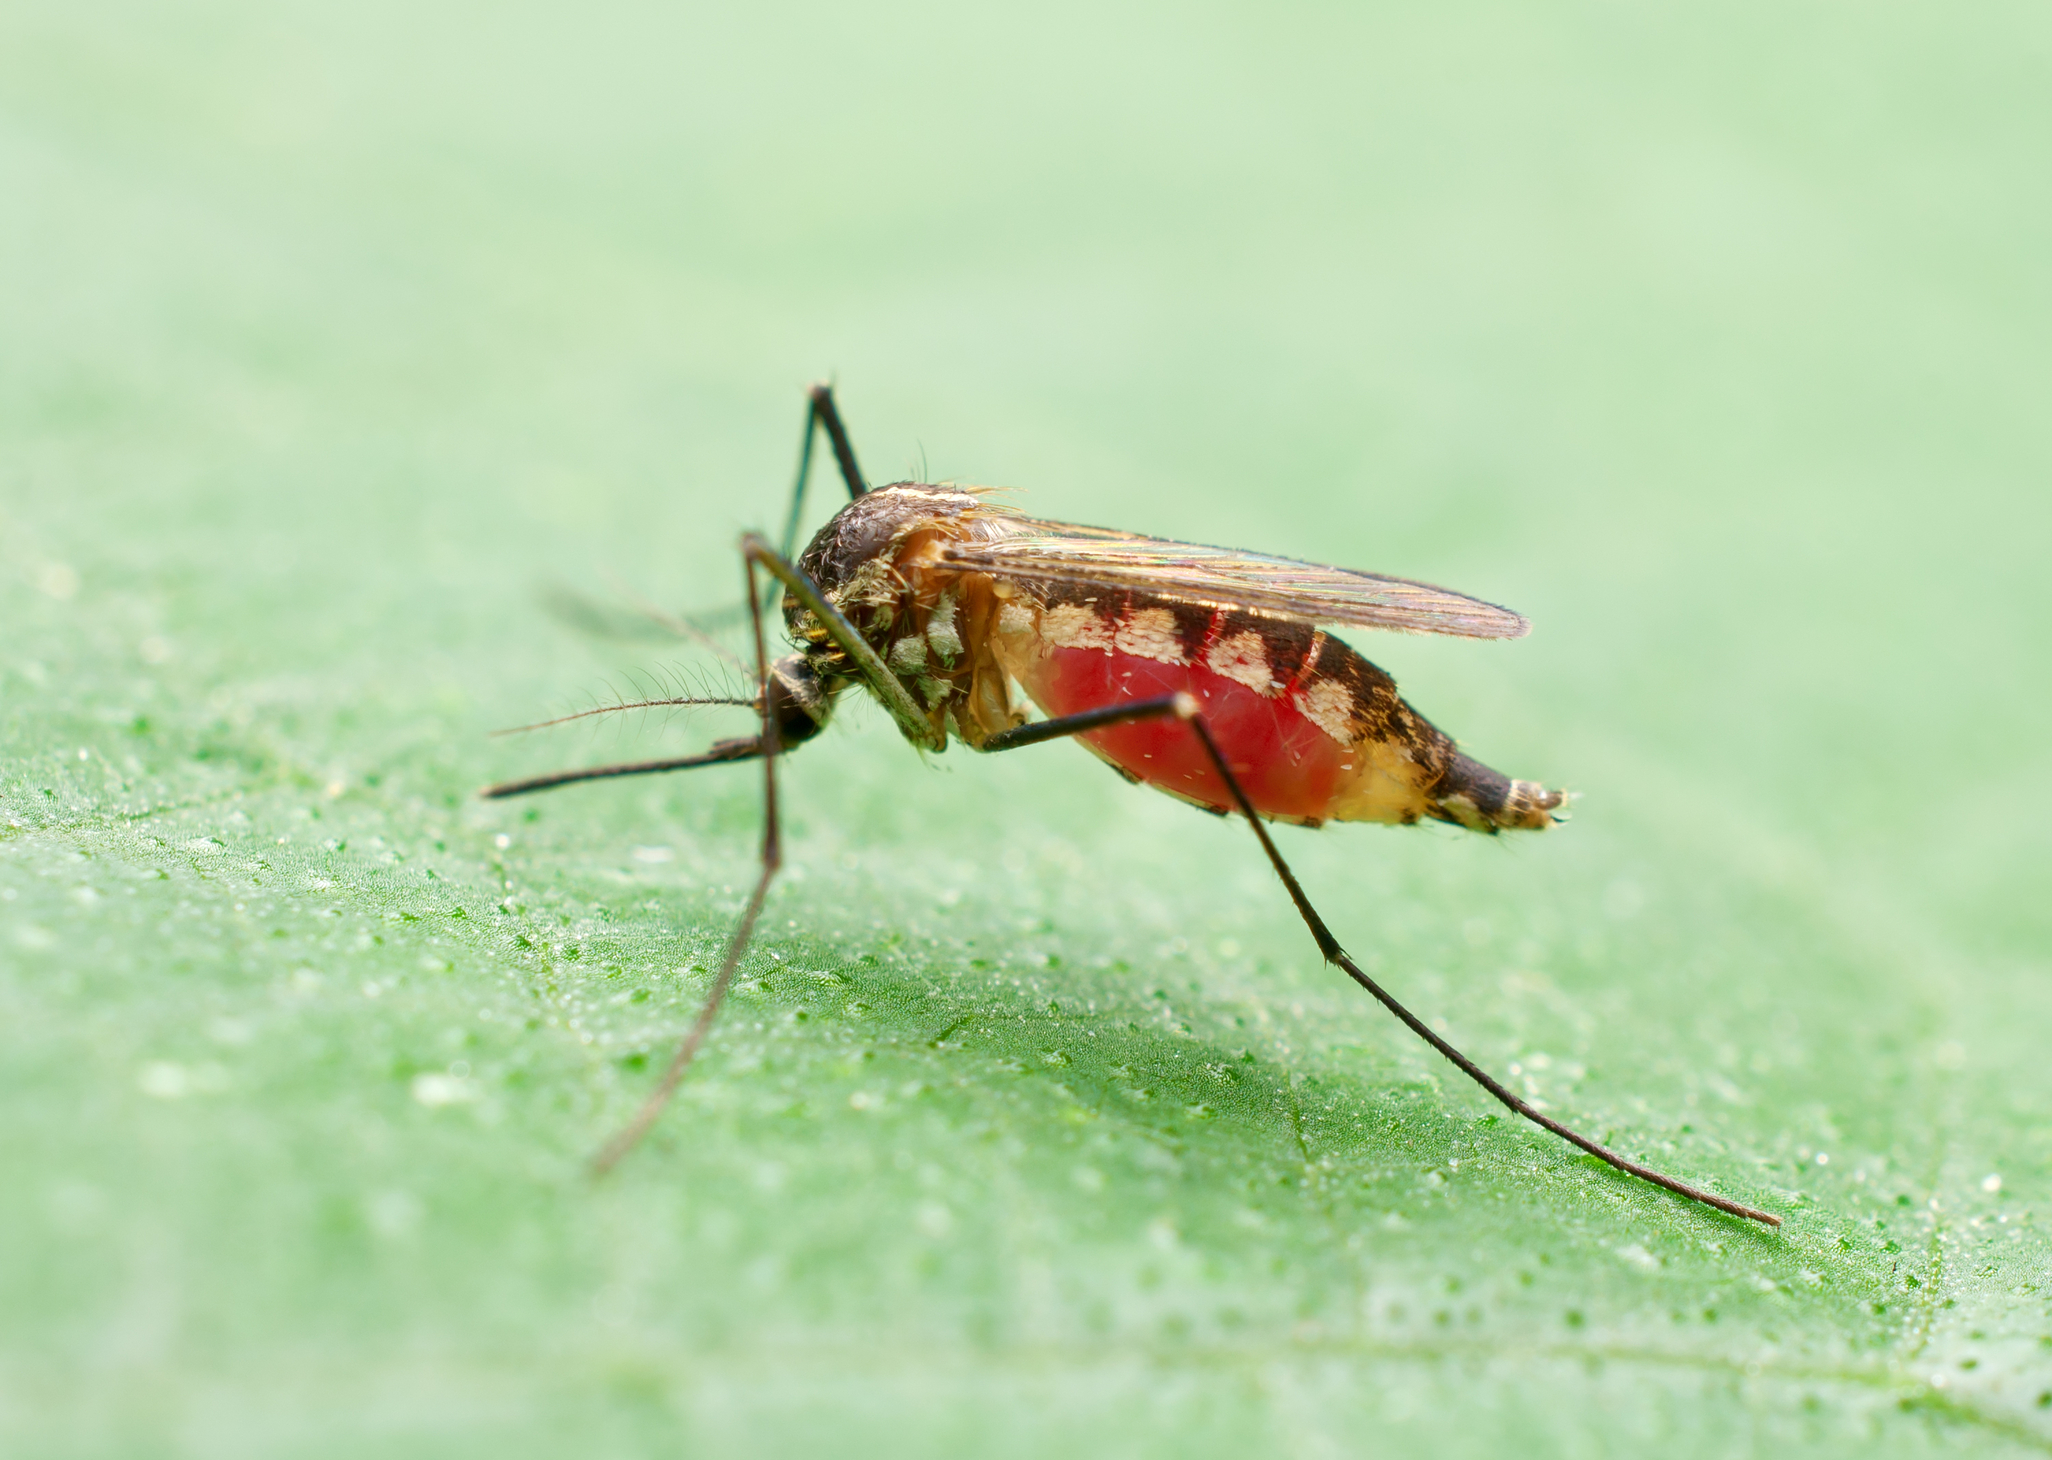 http://www.dreamstime.com/royalty-free-stock-image-mosquito-image24418566